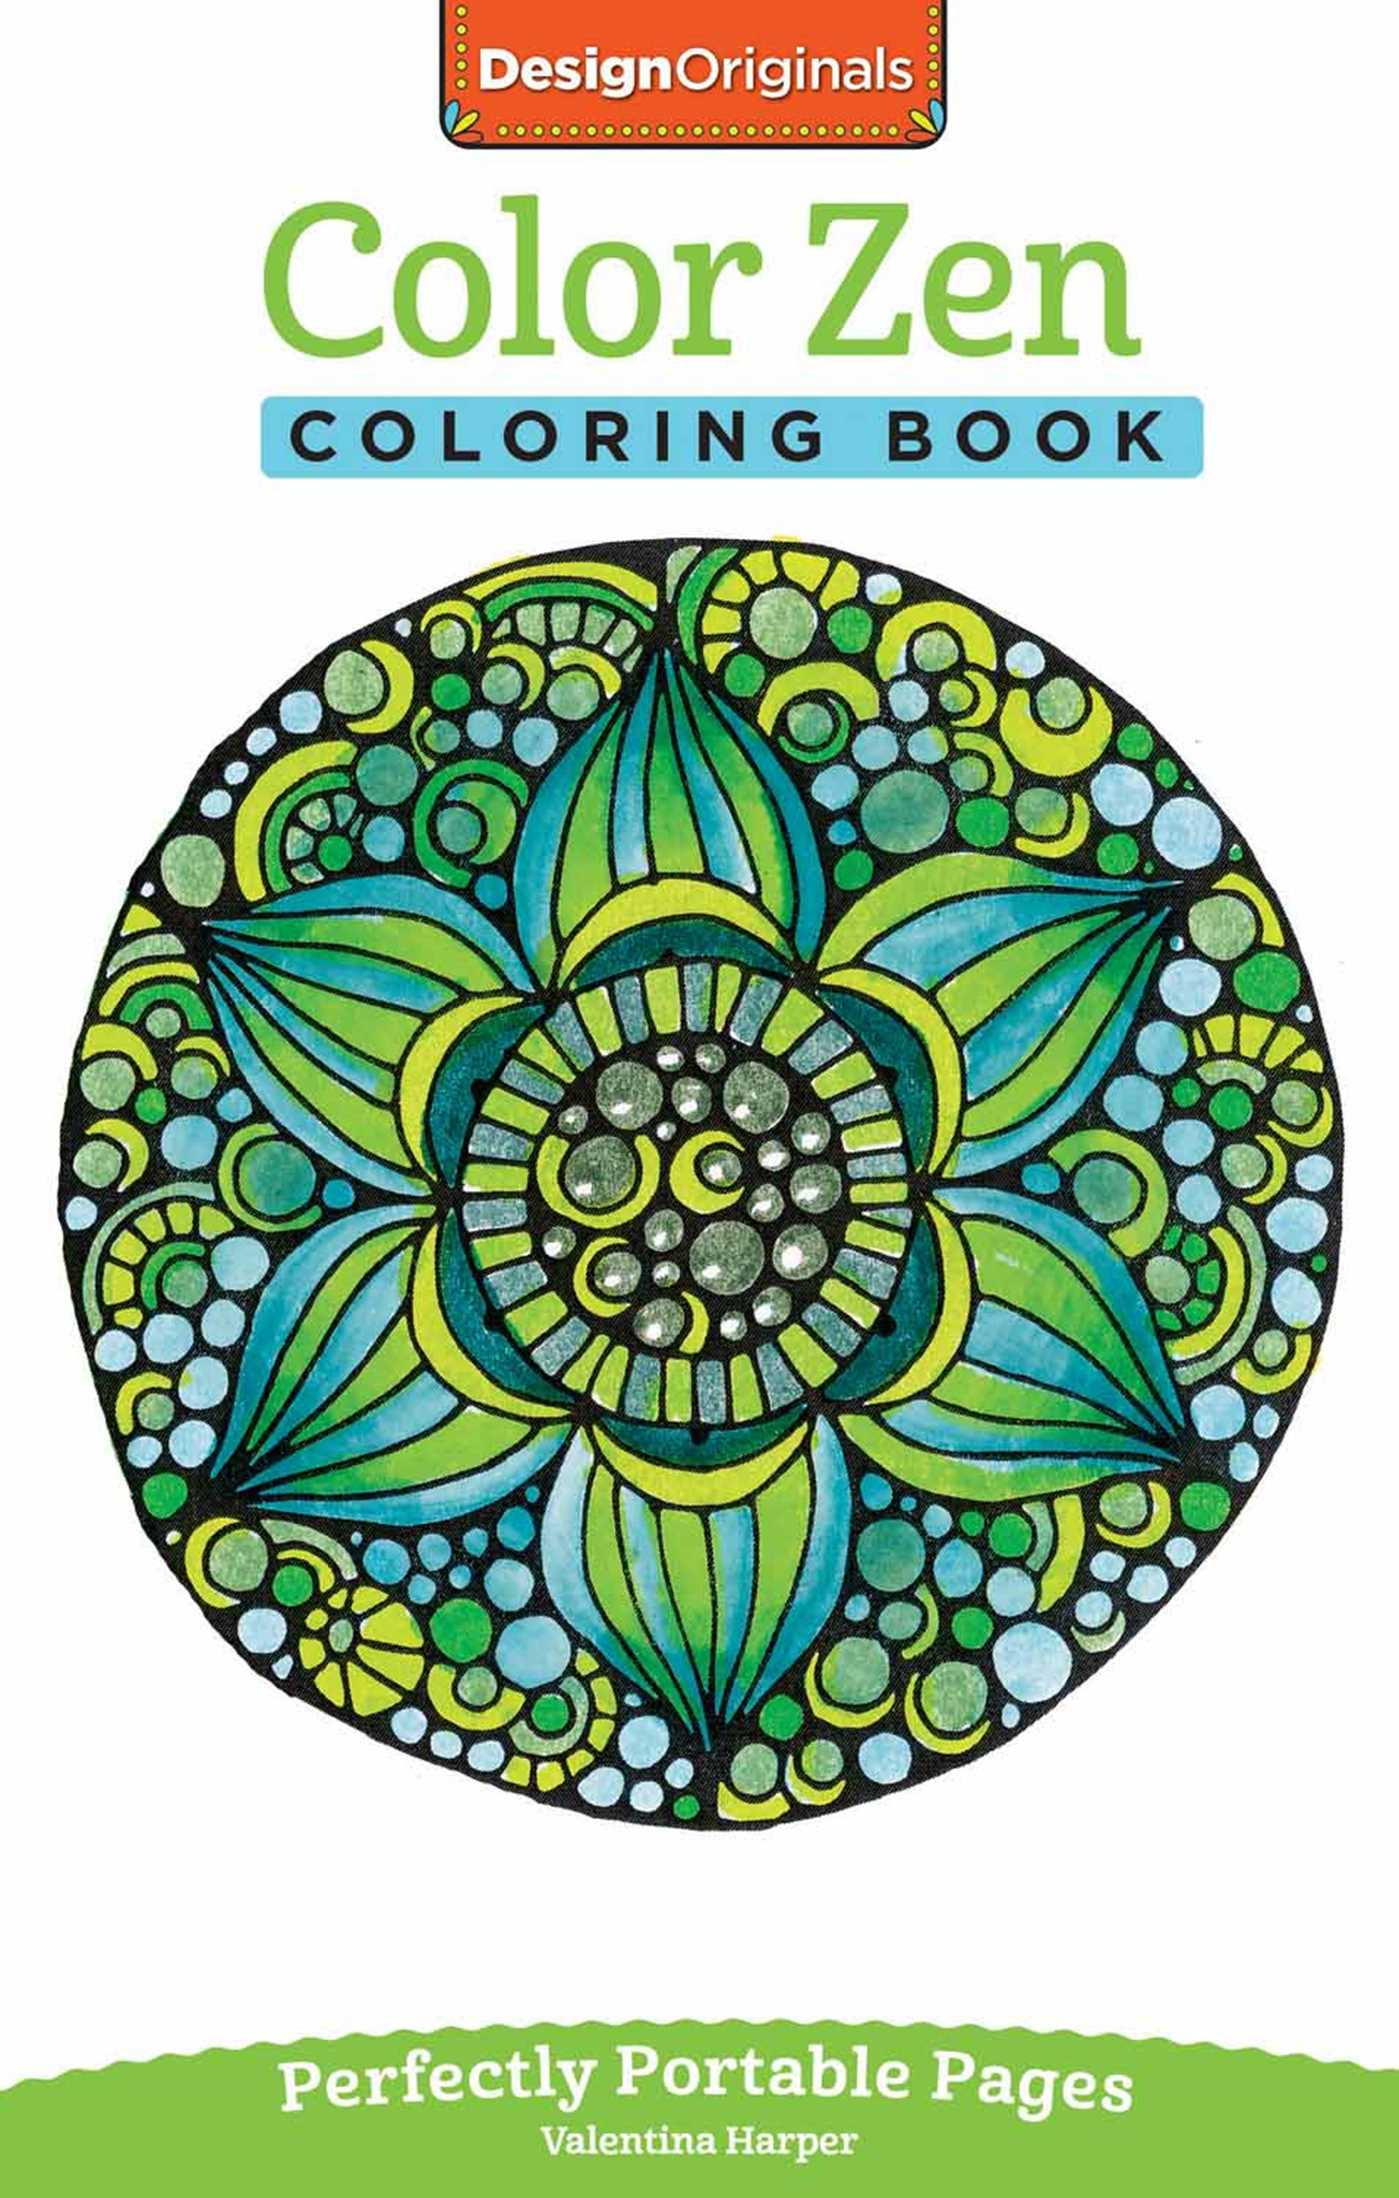 Color Zen Coloring Book | Book by Valentina Harper | Official ...